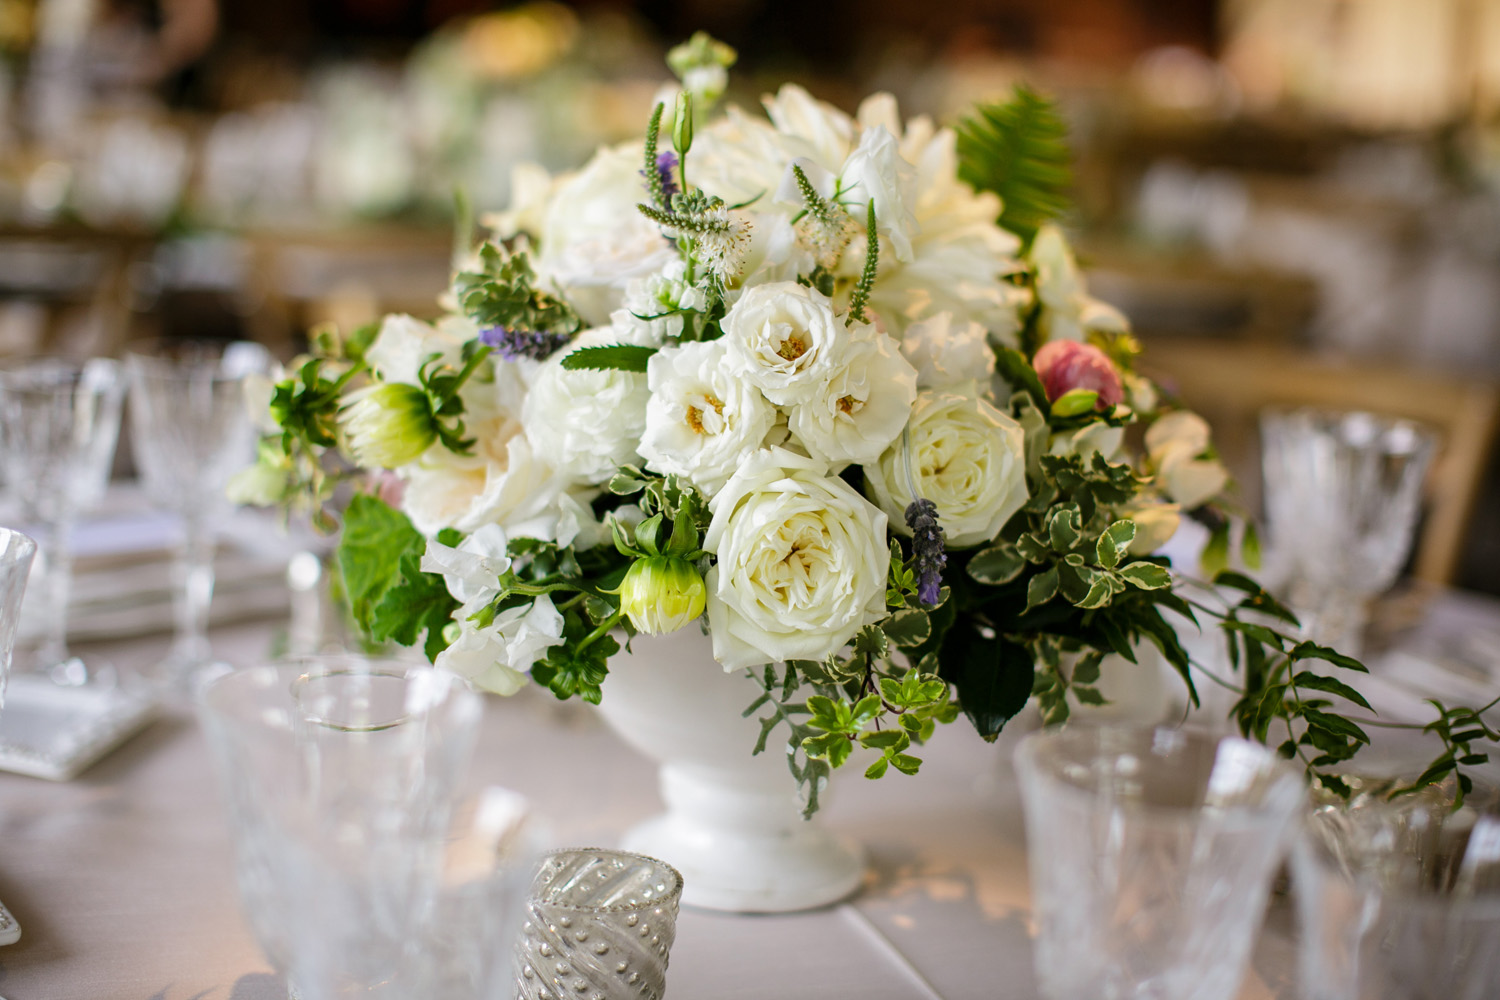 www.santabarbarawedding.com | Cody Floral Design | Classic White and Lavender Floral Centerpiece